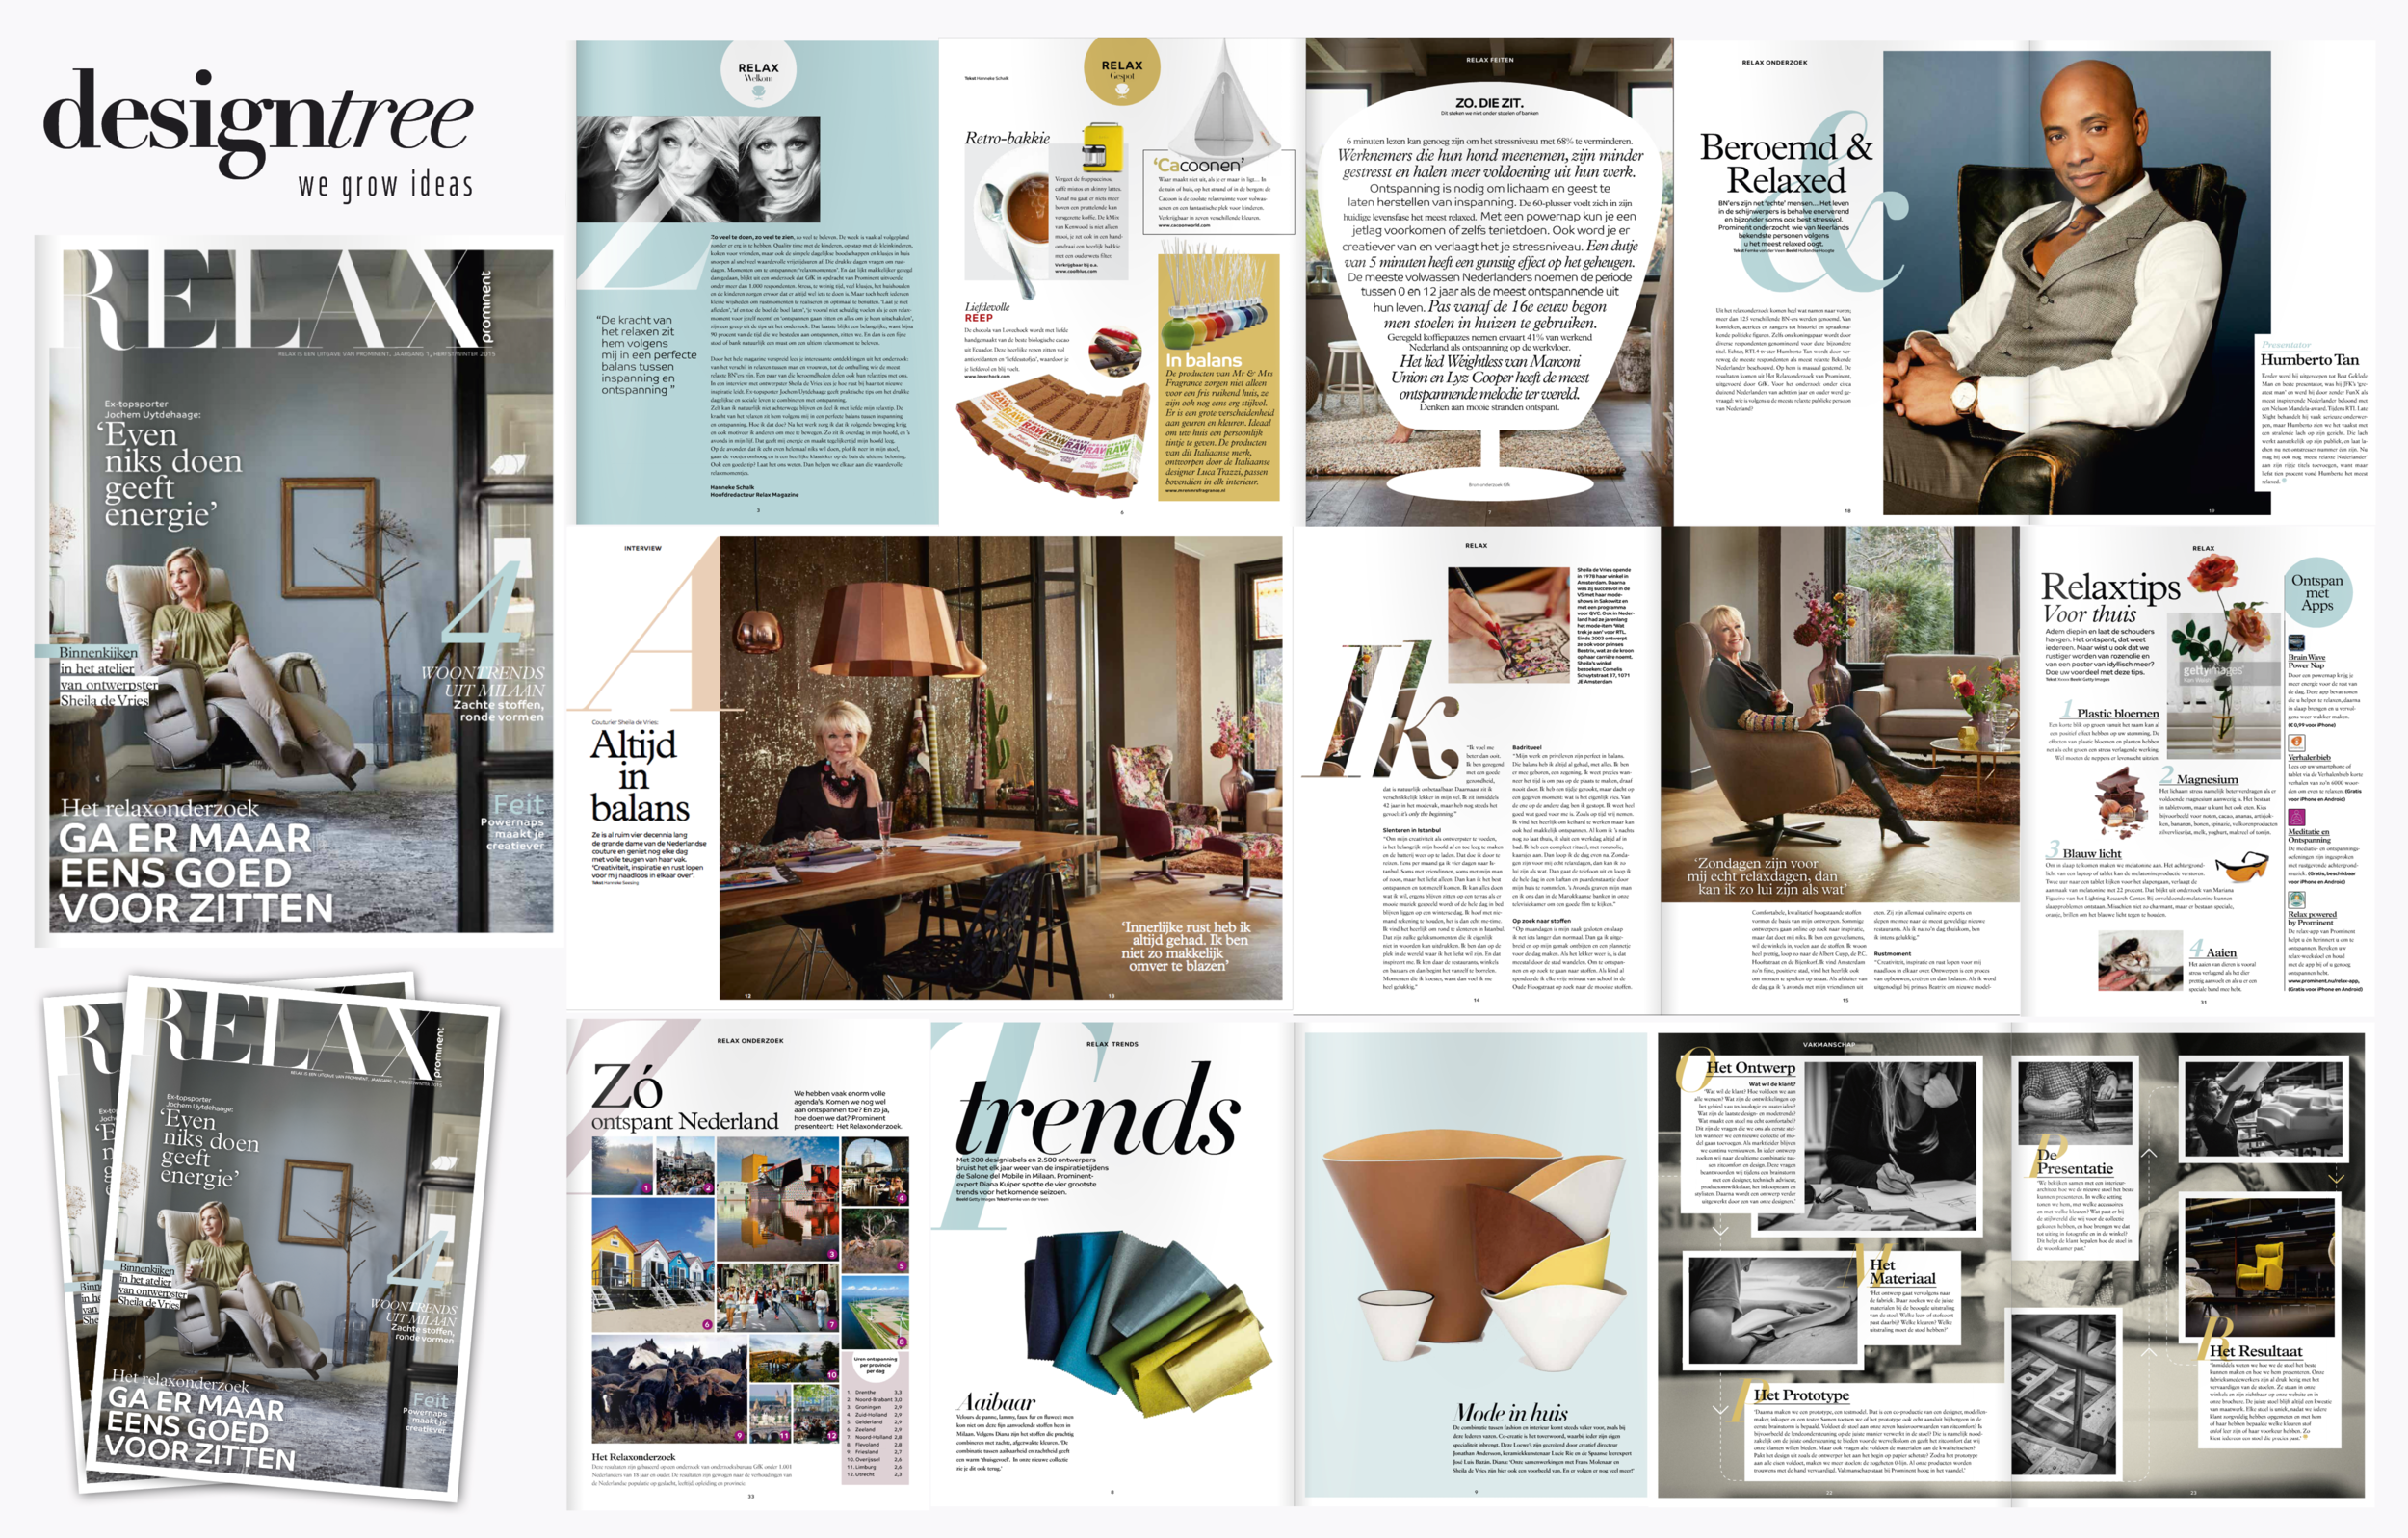 Relax magazine, redesigned by Designtree